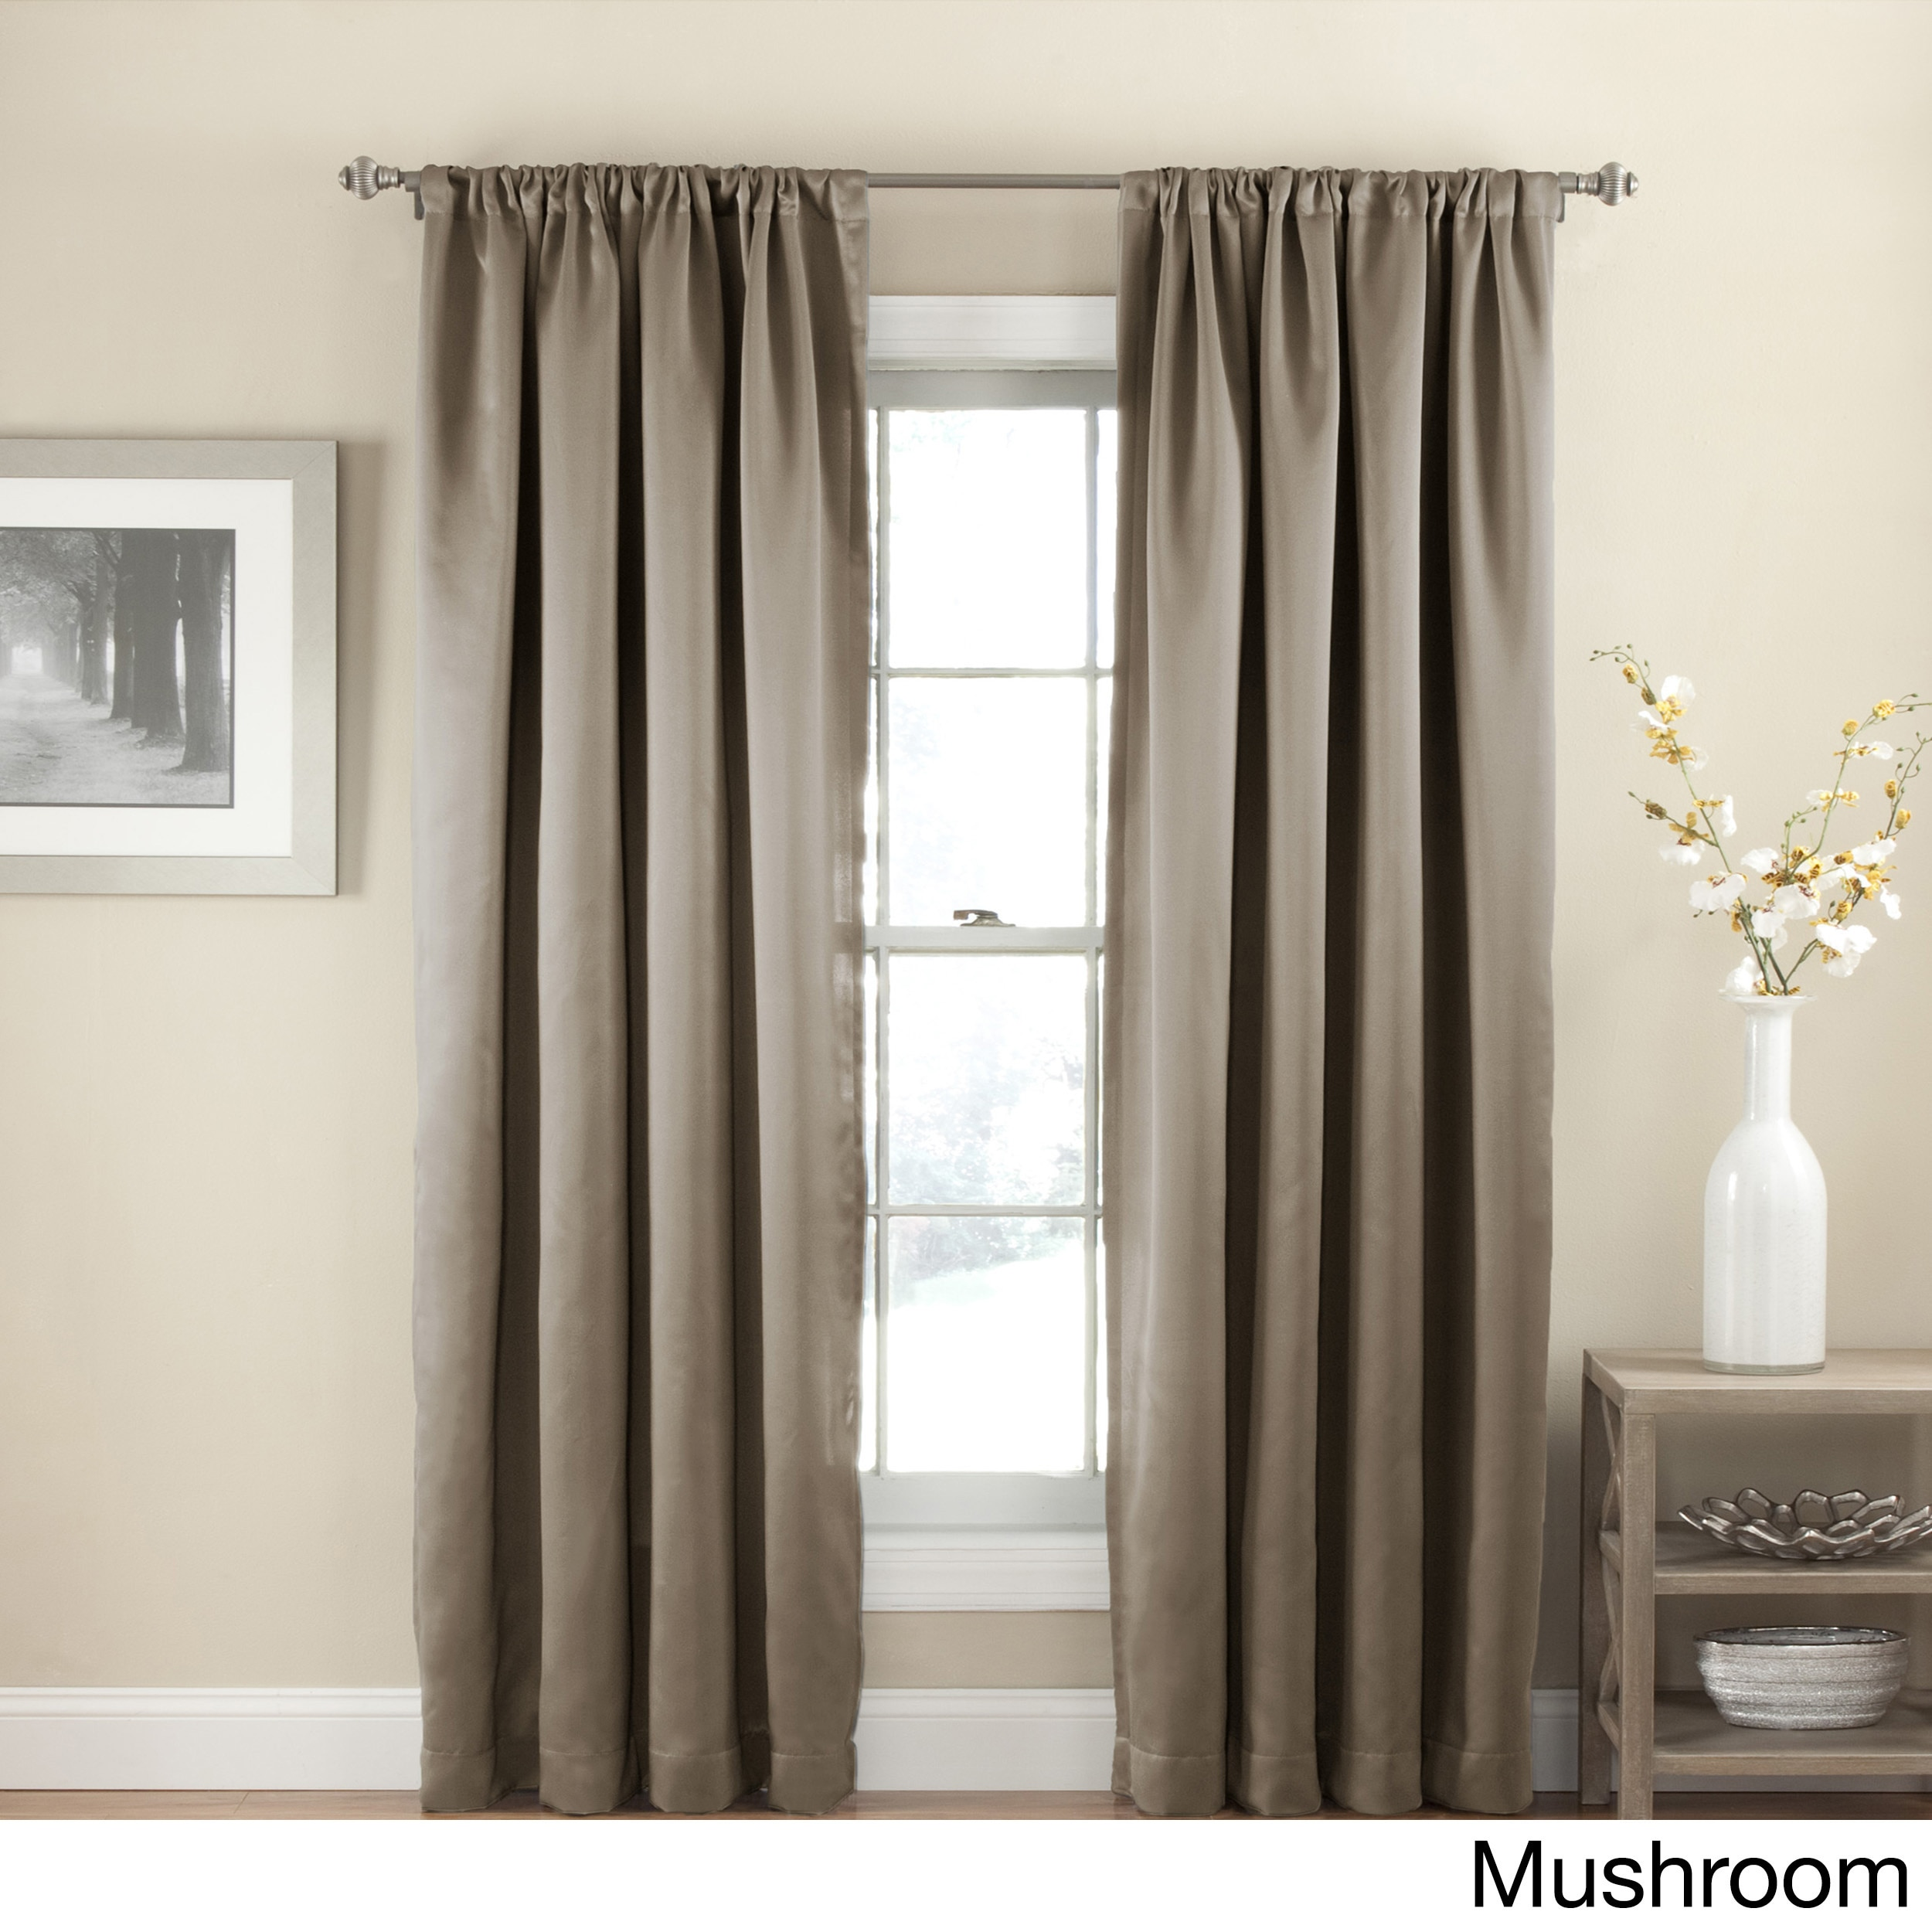 Shop eclipse solid thermapanel room darkening curtains on sale free shipping on orders over 45 overstock com 16149945